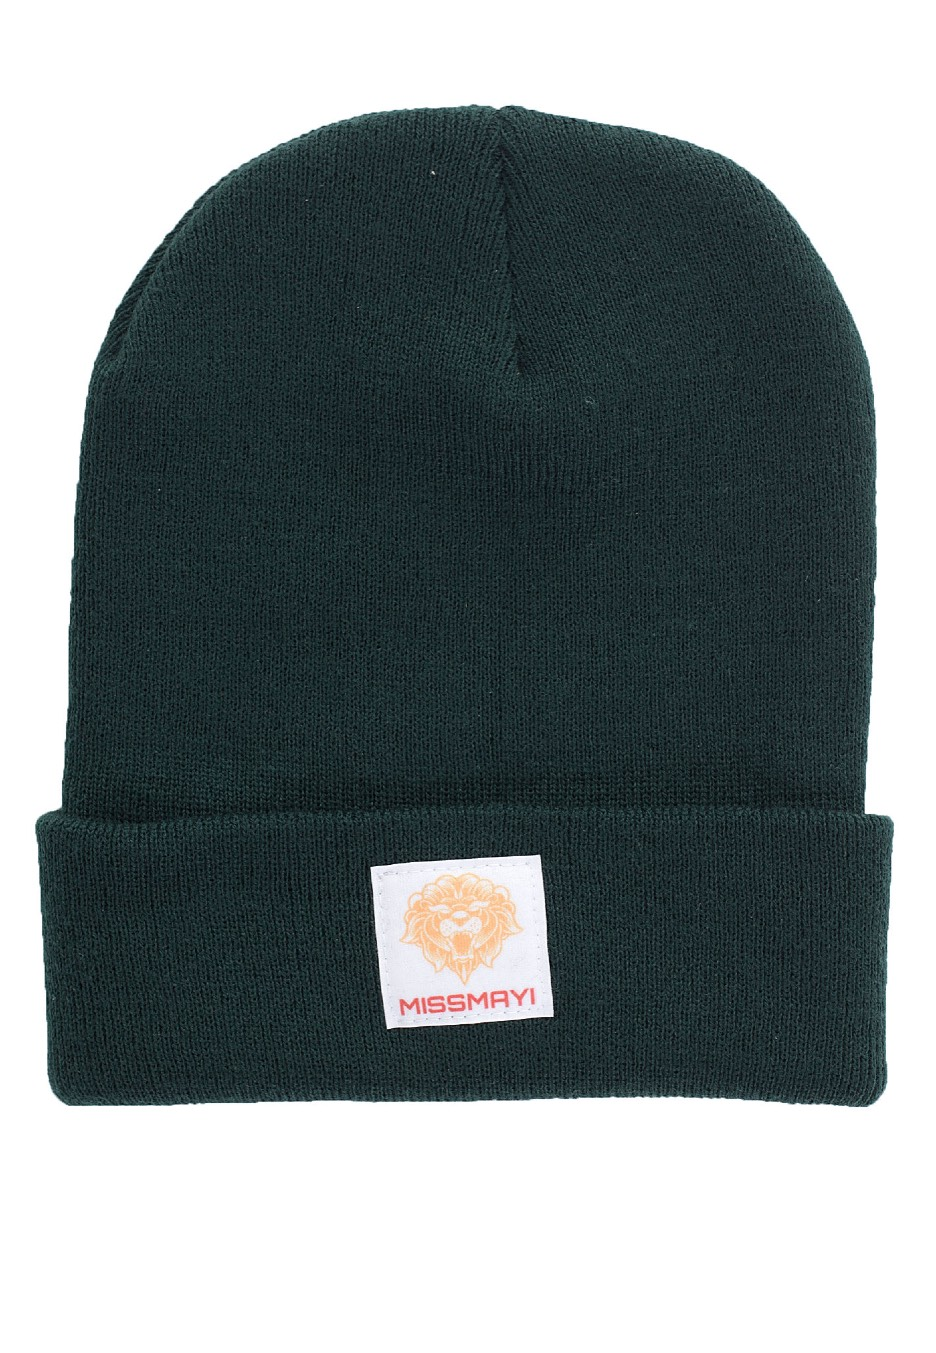 Miss May I - Lion Patch Bottle Green - Beanies